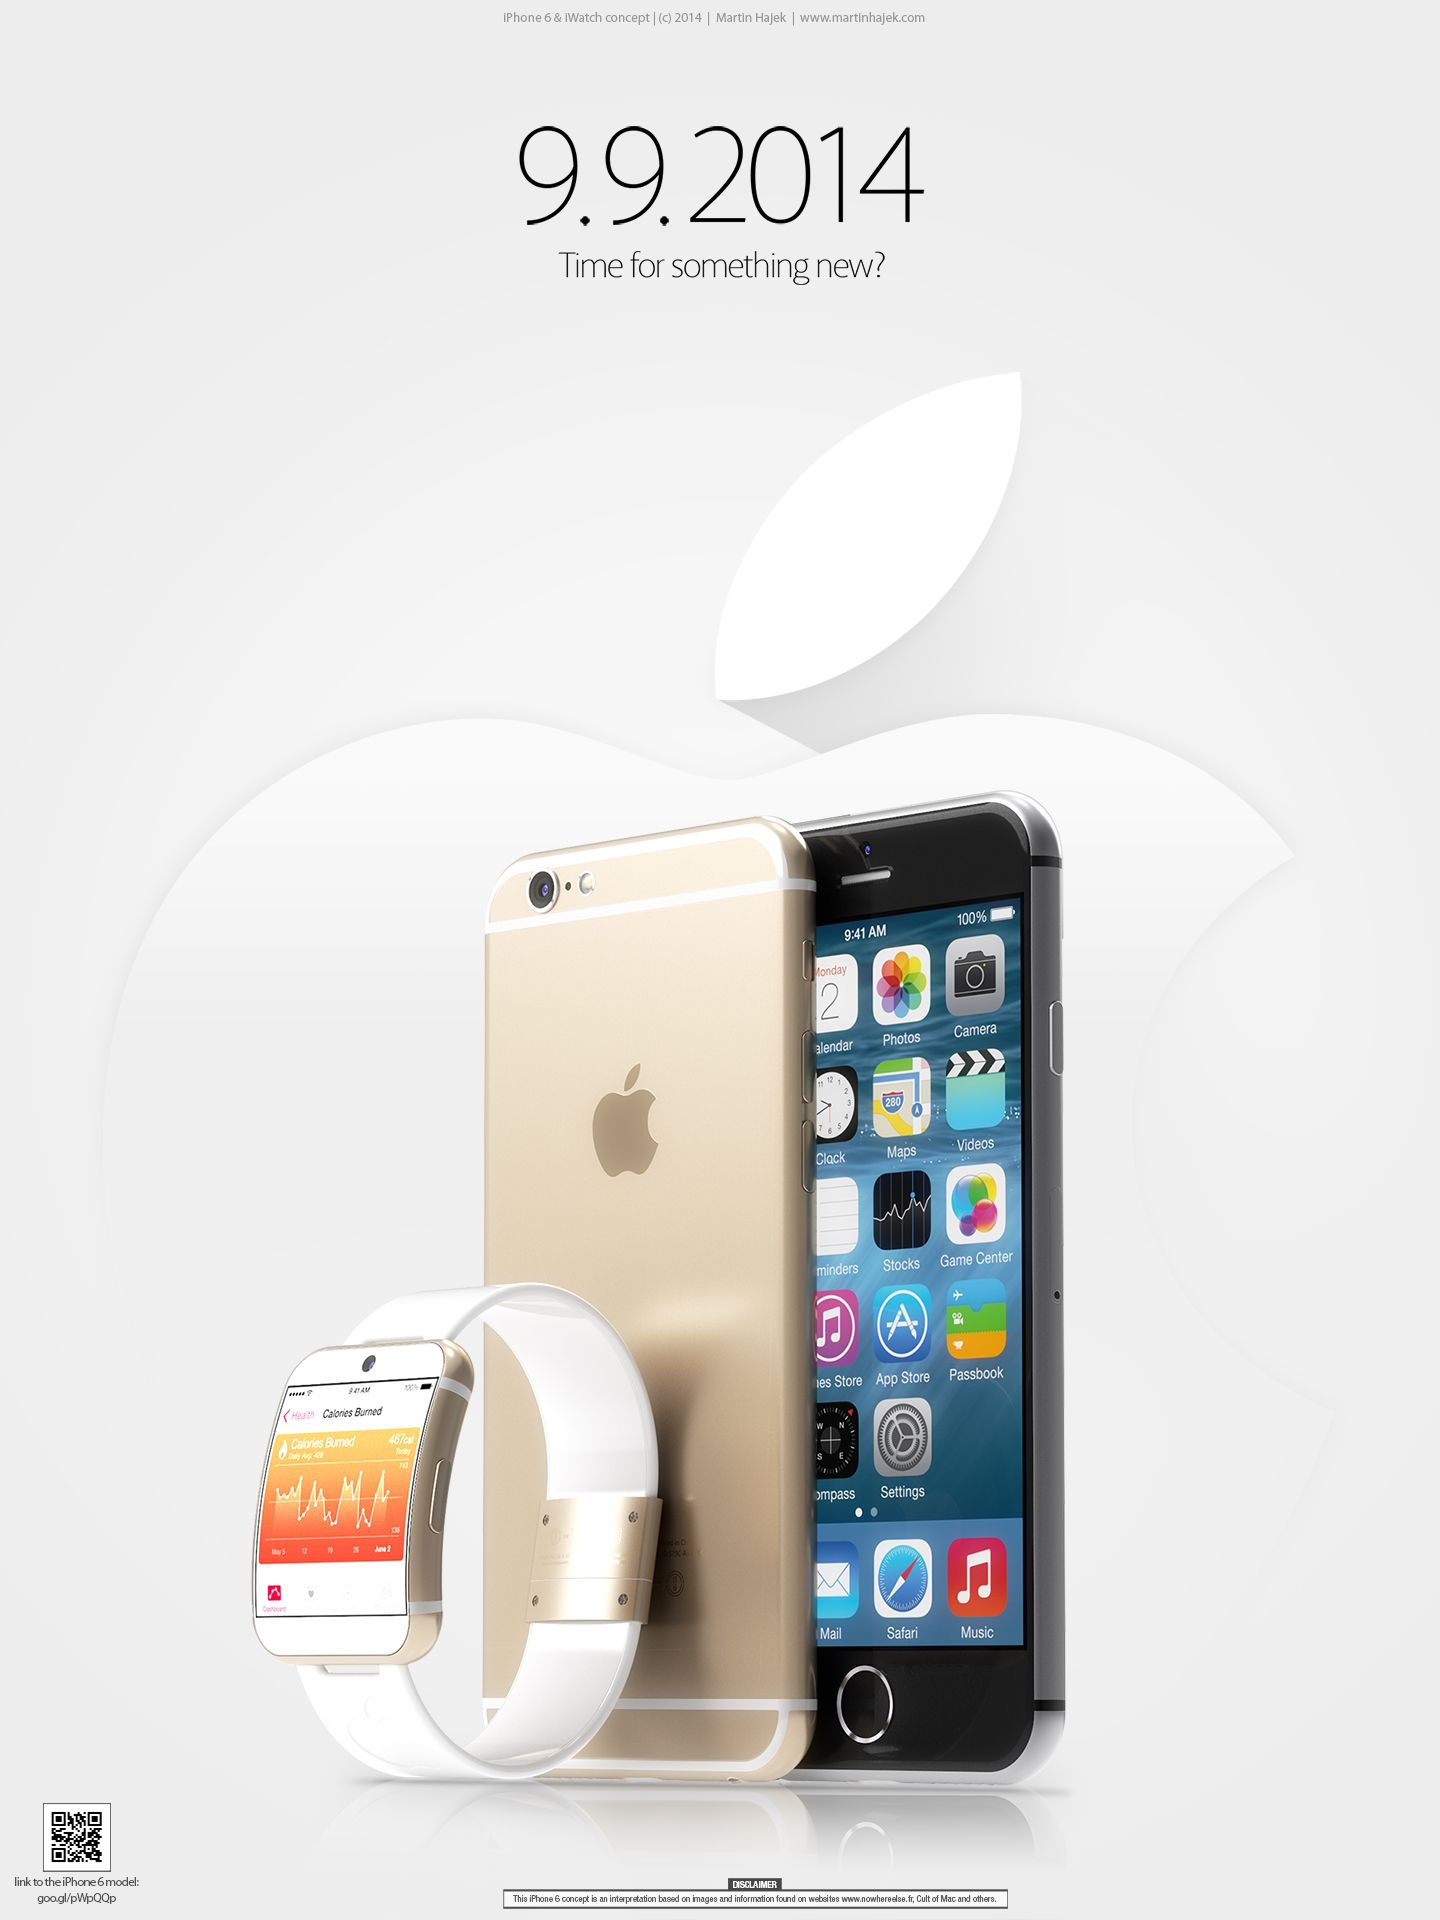 iPhone 6 iWatch Martin Hayek